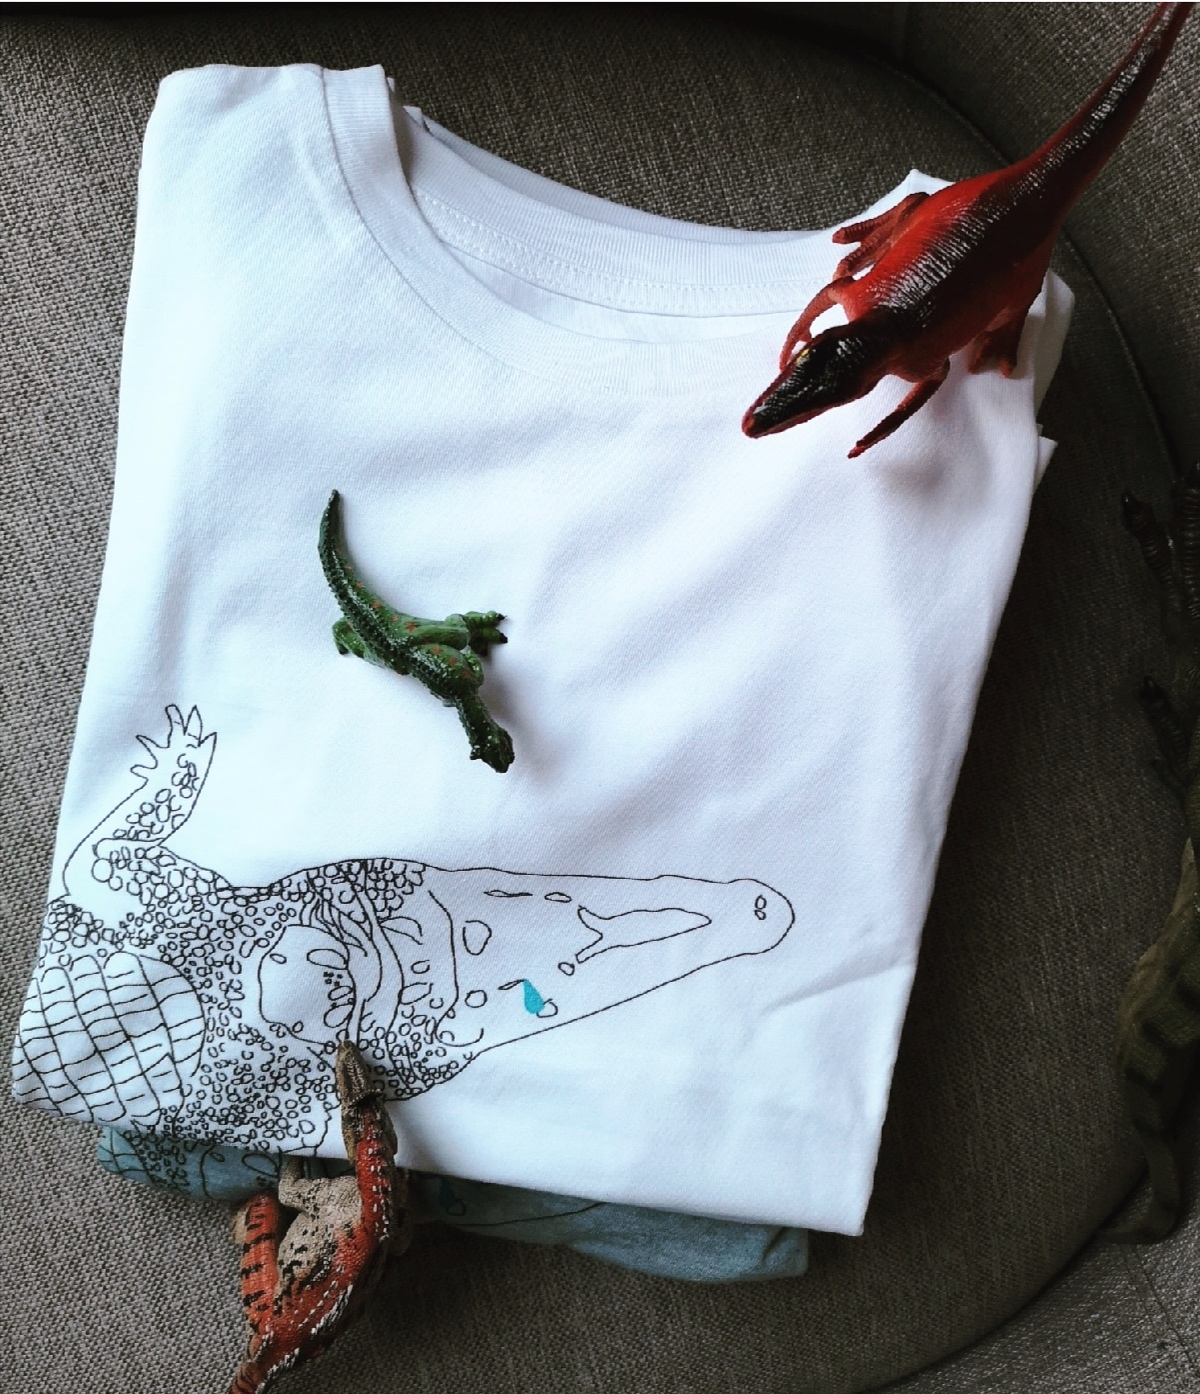 Tshirt Crocodile ENFANT - 30 €